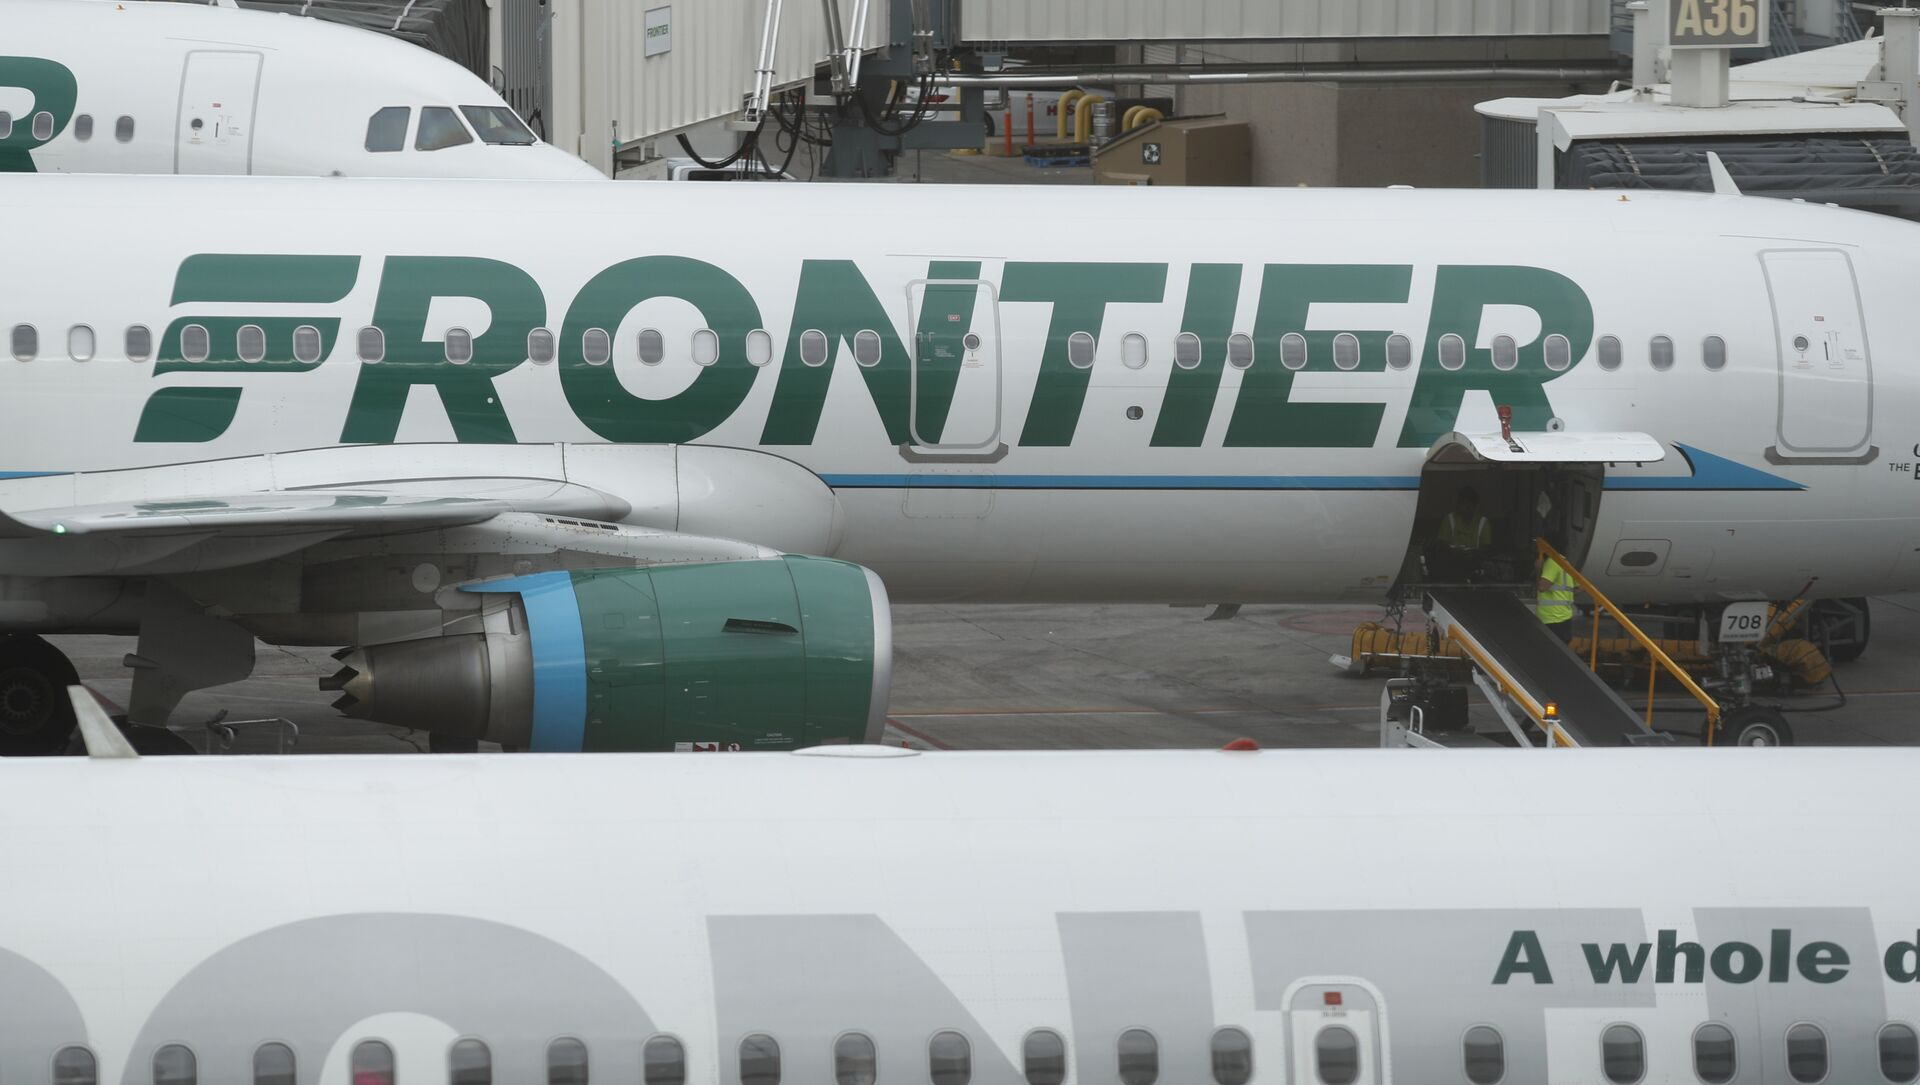 In this Monday, May 15, 2017, photograph, the company logo is showcased on the side of a Frontier Airlines airplane waiting at a gate on Concourse A in Denver International Airport in Denver - Sputnik International, 1920, 04.08.2021